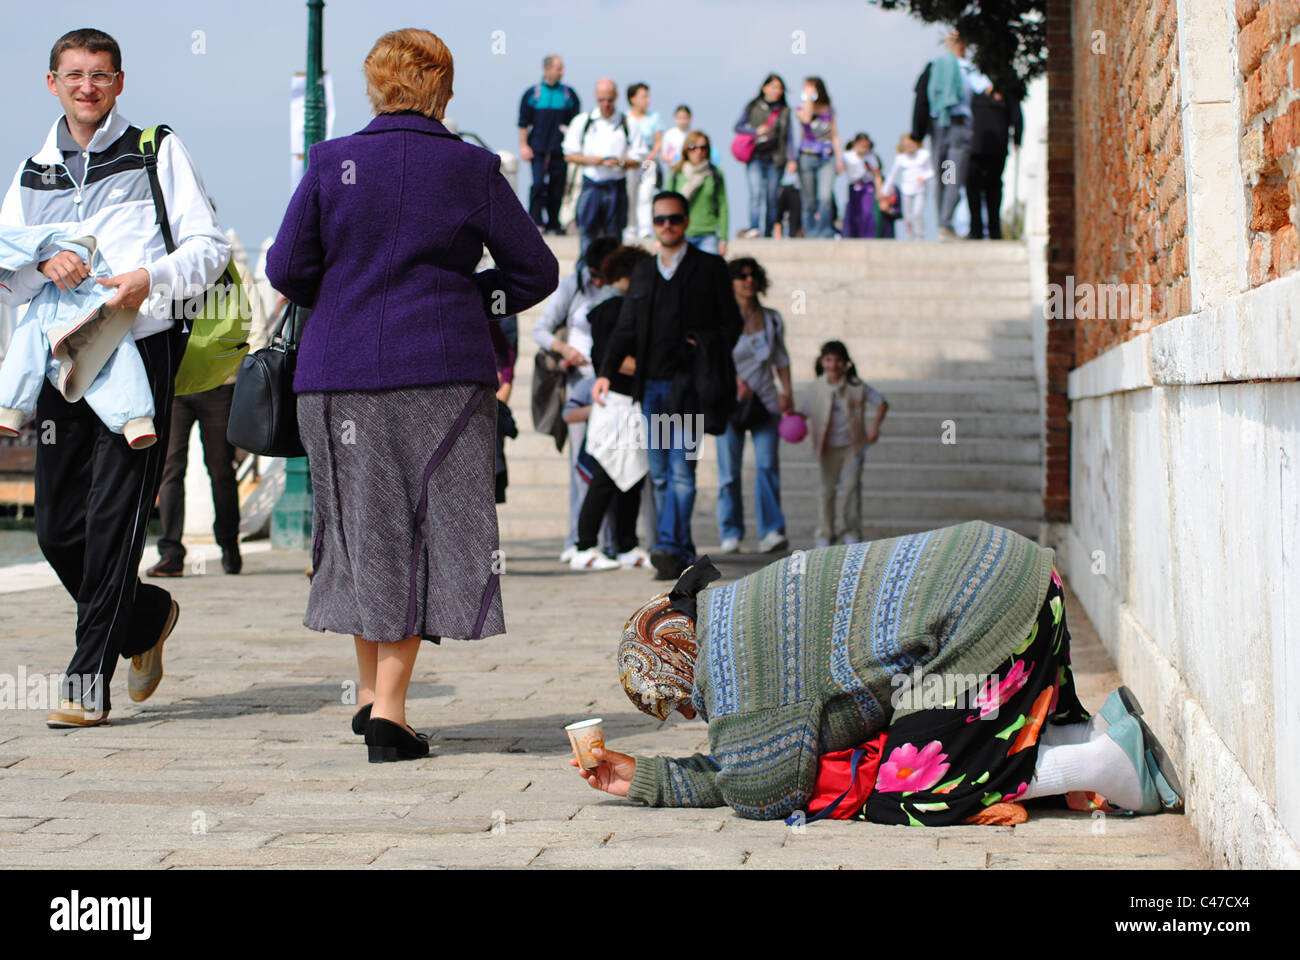 Woman begging in Venice, Italy - Stock Image